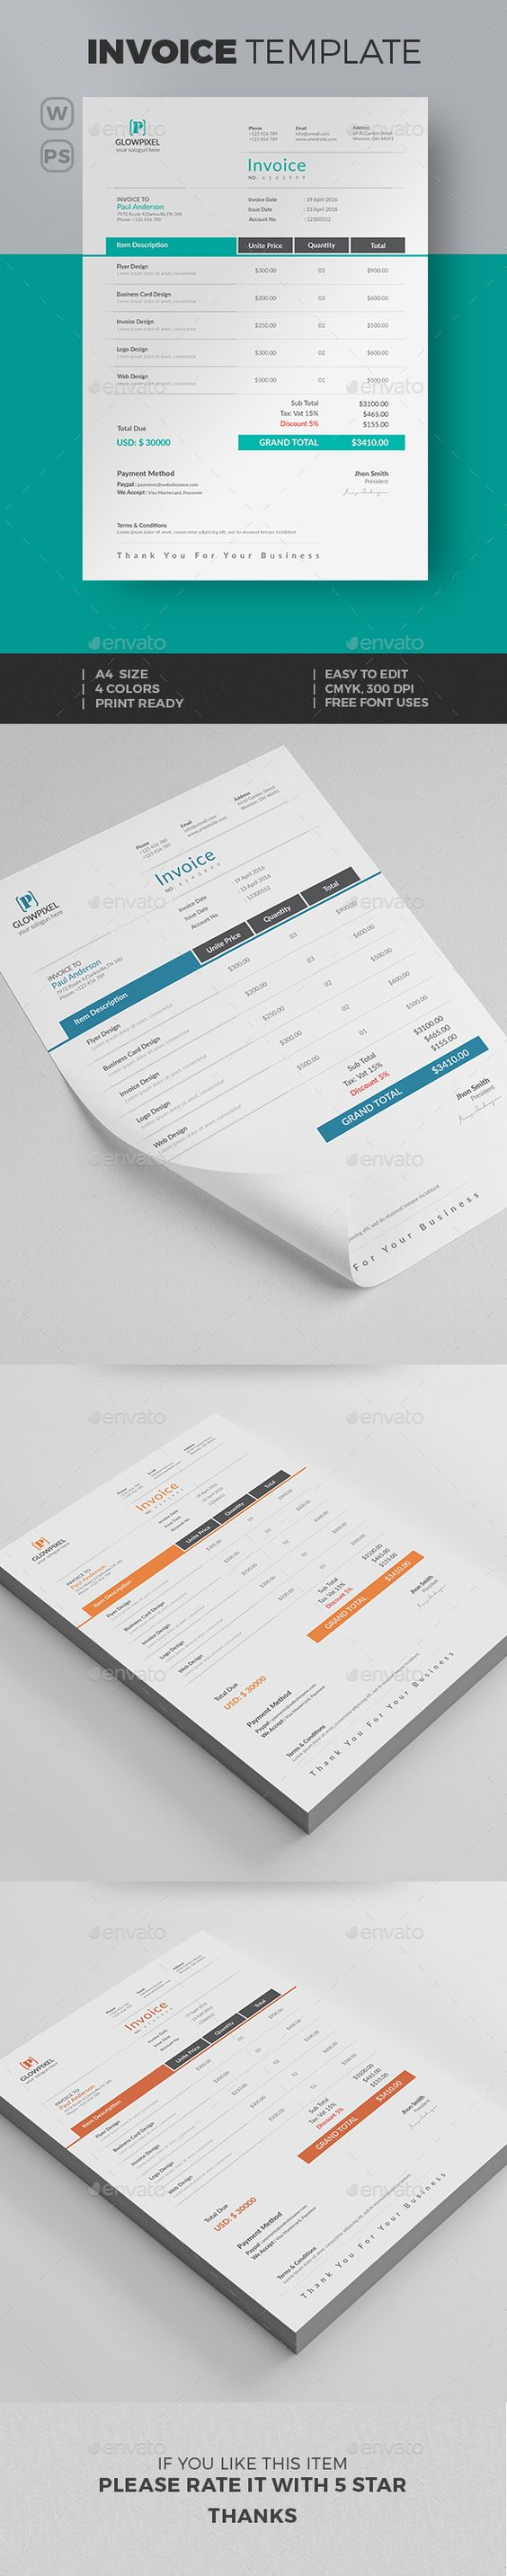 invoice | invoice template, photoshop and proposals, Invoice examples